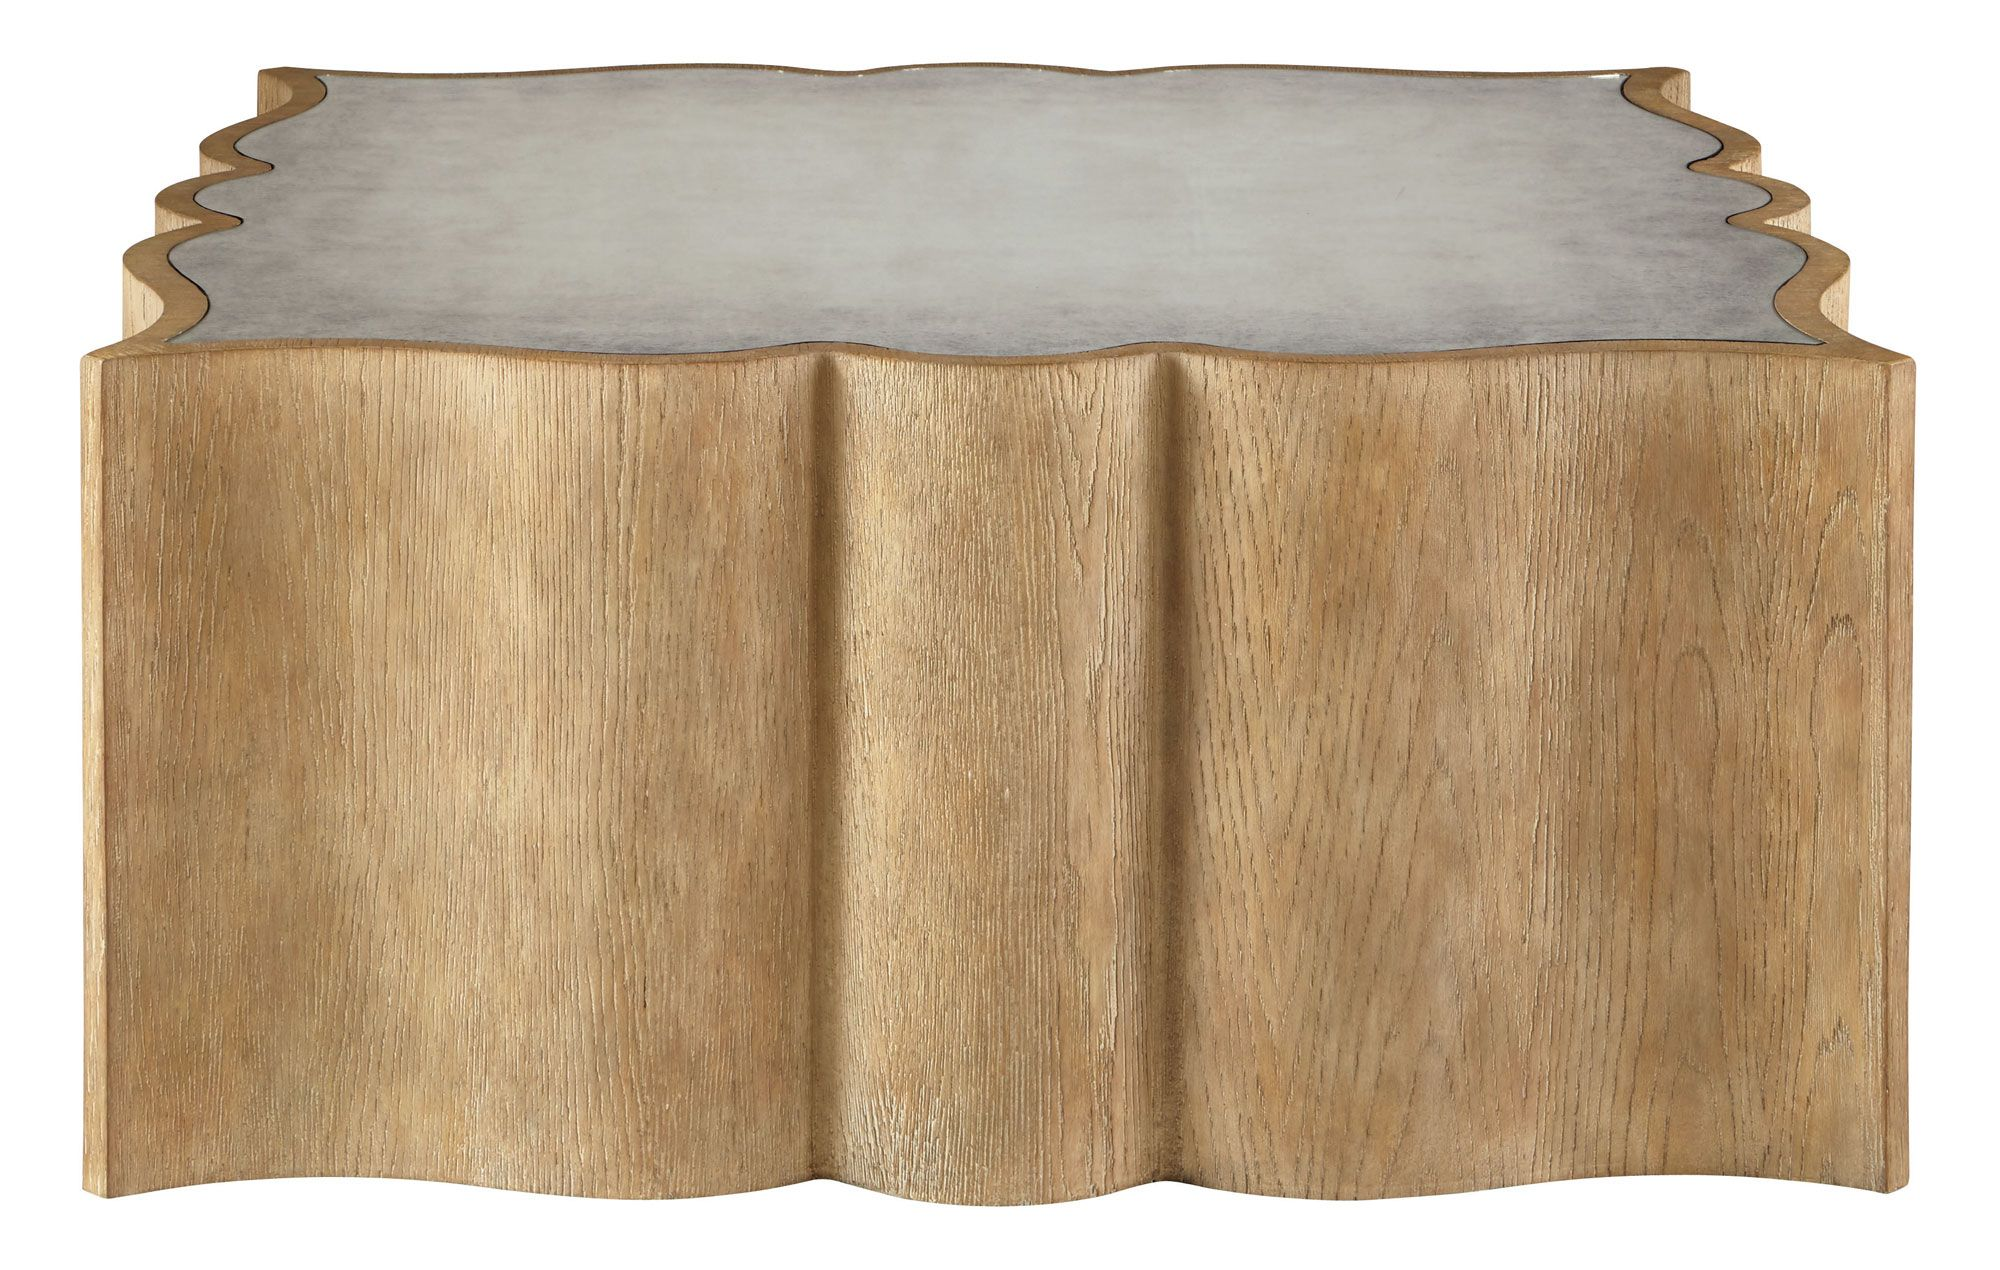 Cocktail Table | Bernhardt Alisa W44 D44 H18 362 010